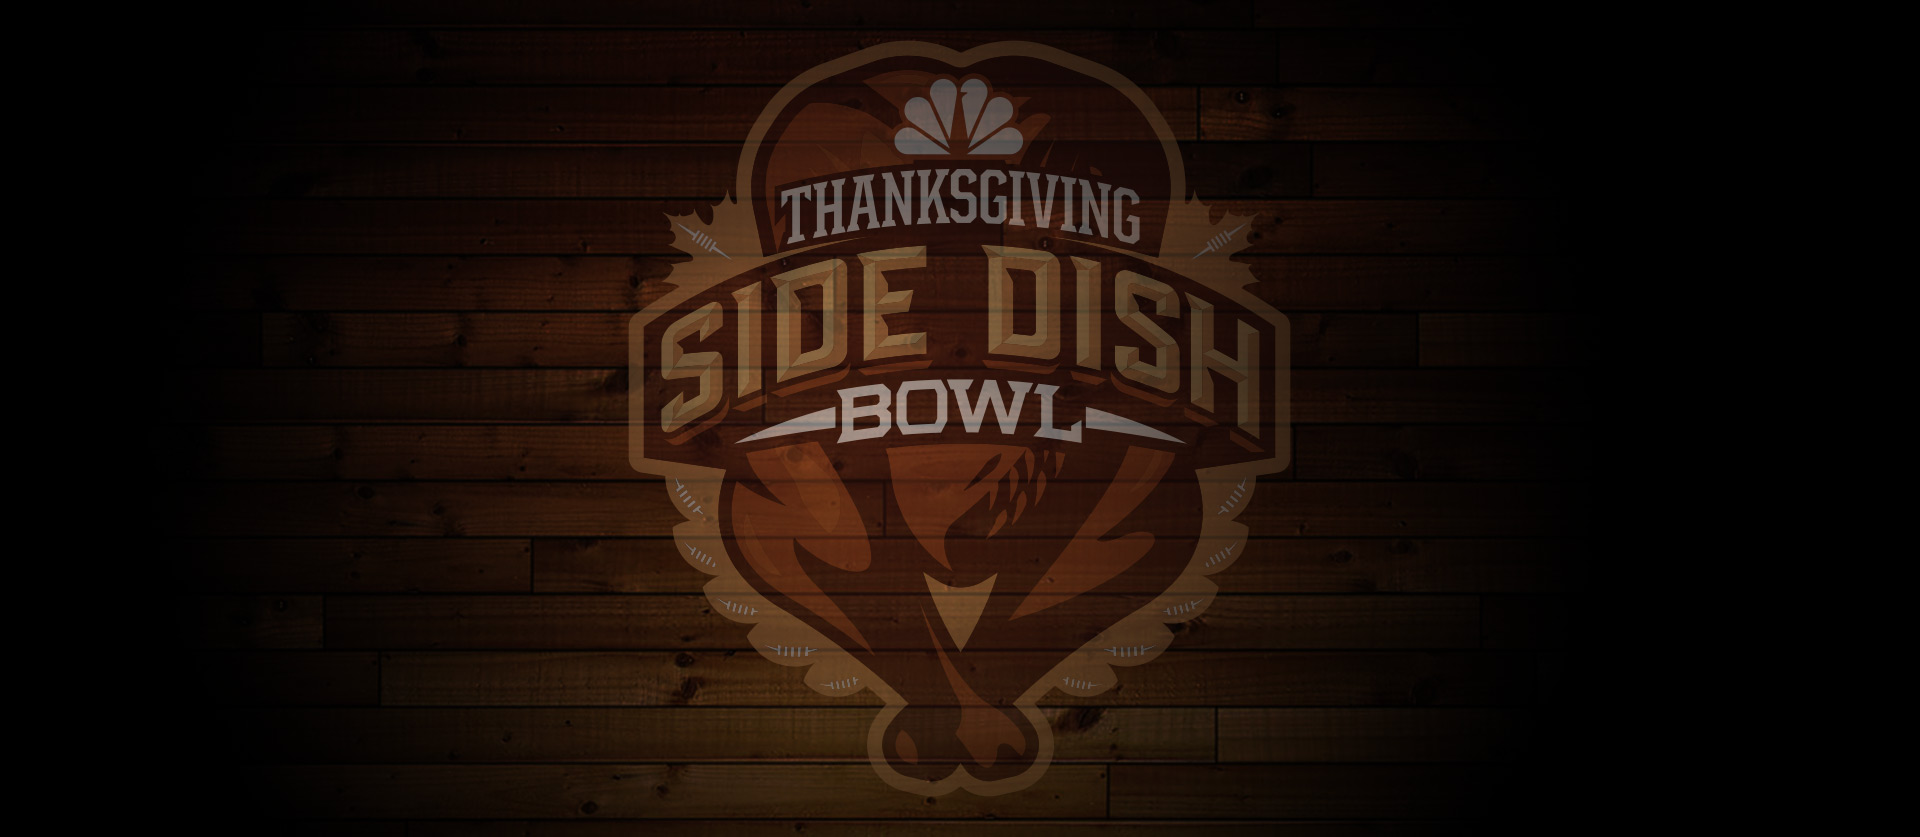 NBC Sports Side Dish Bowl - Full Project Details